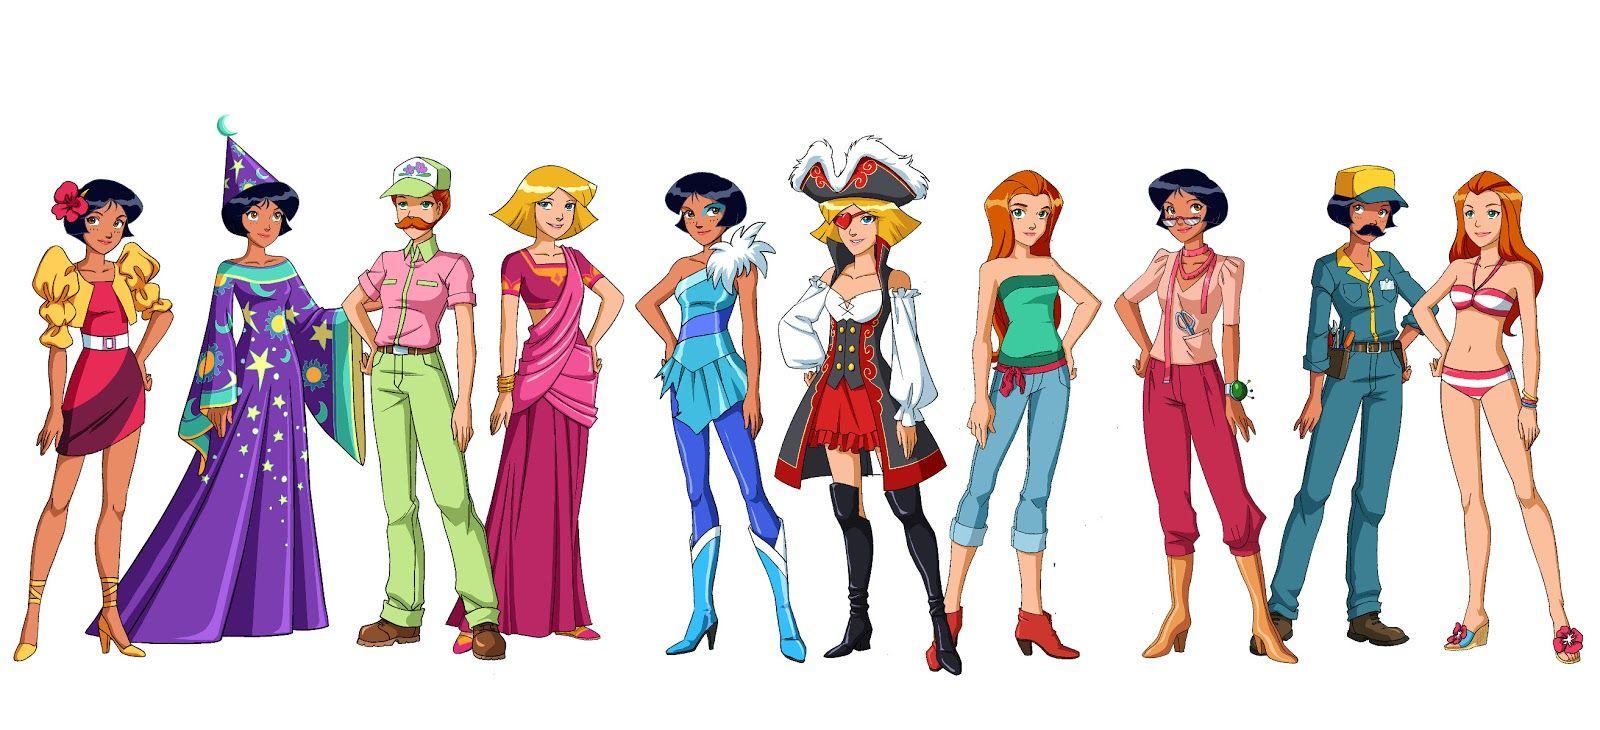 Totally spies season 6 character designs totally spies dessin anim anim - Dessin anime de totally spies ...